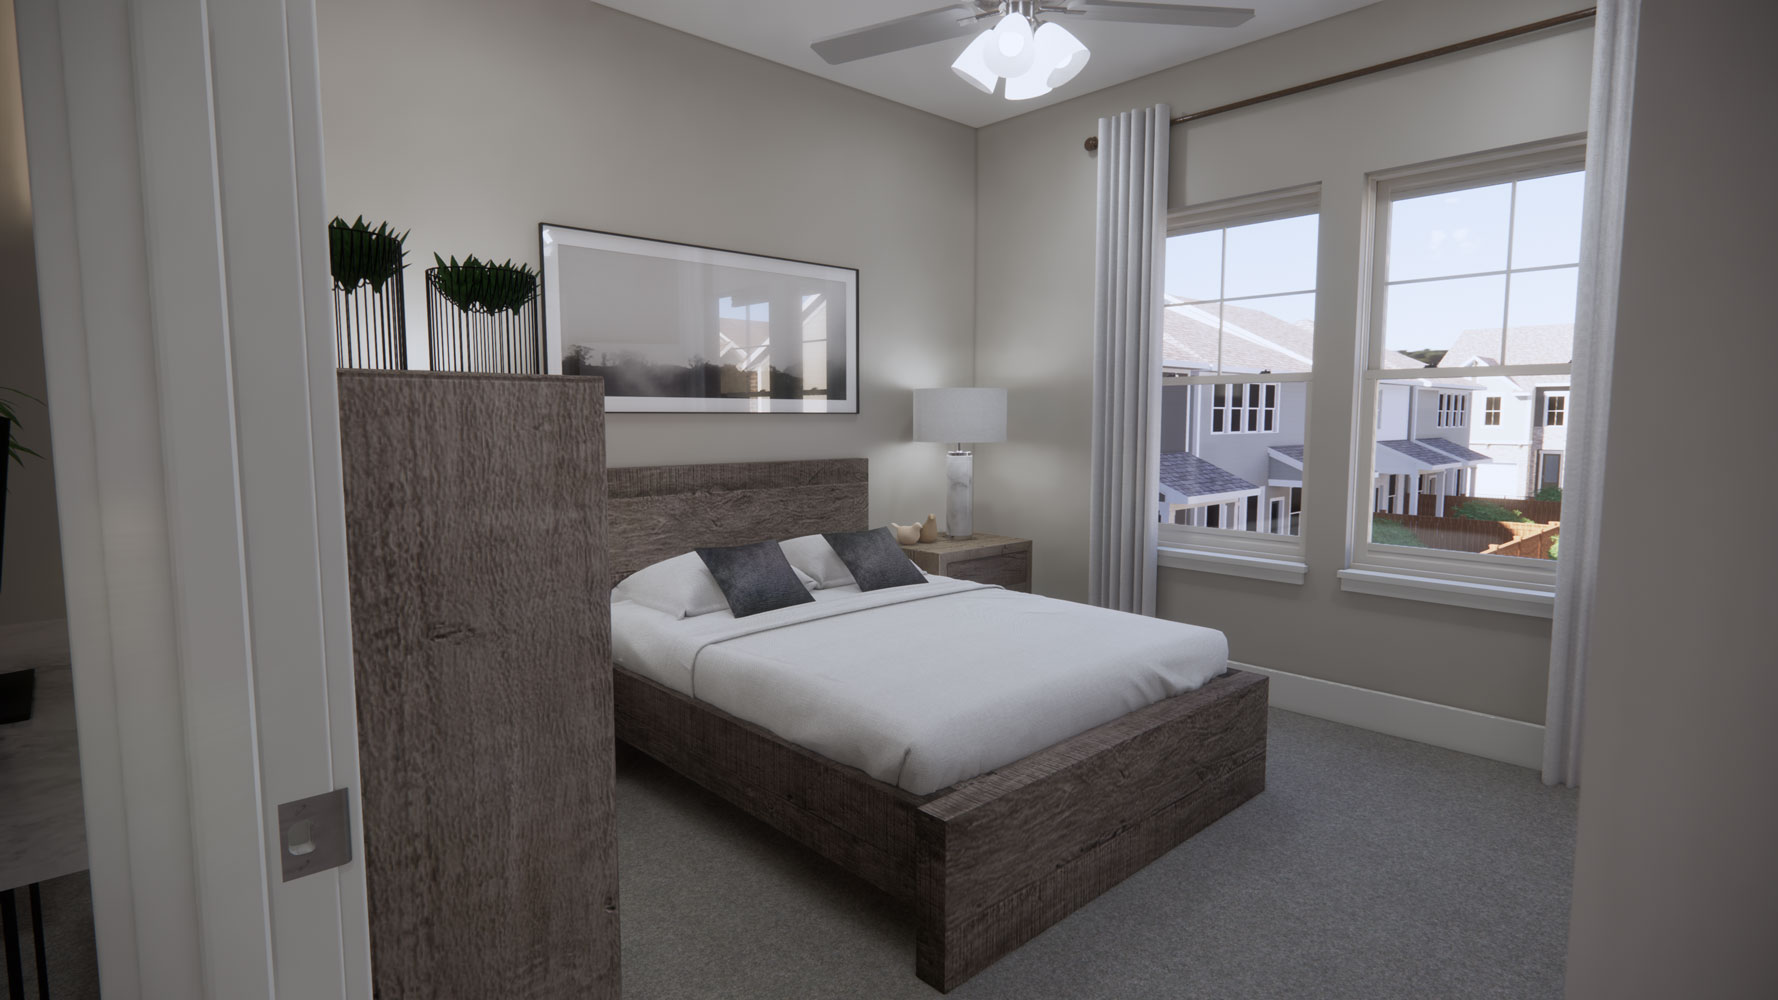 Bedrooms with Windows at Echelon at Reverchon Bluffs in Dallas, Texas